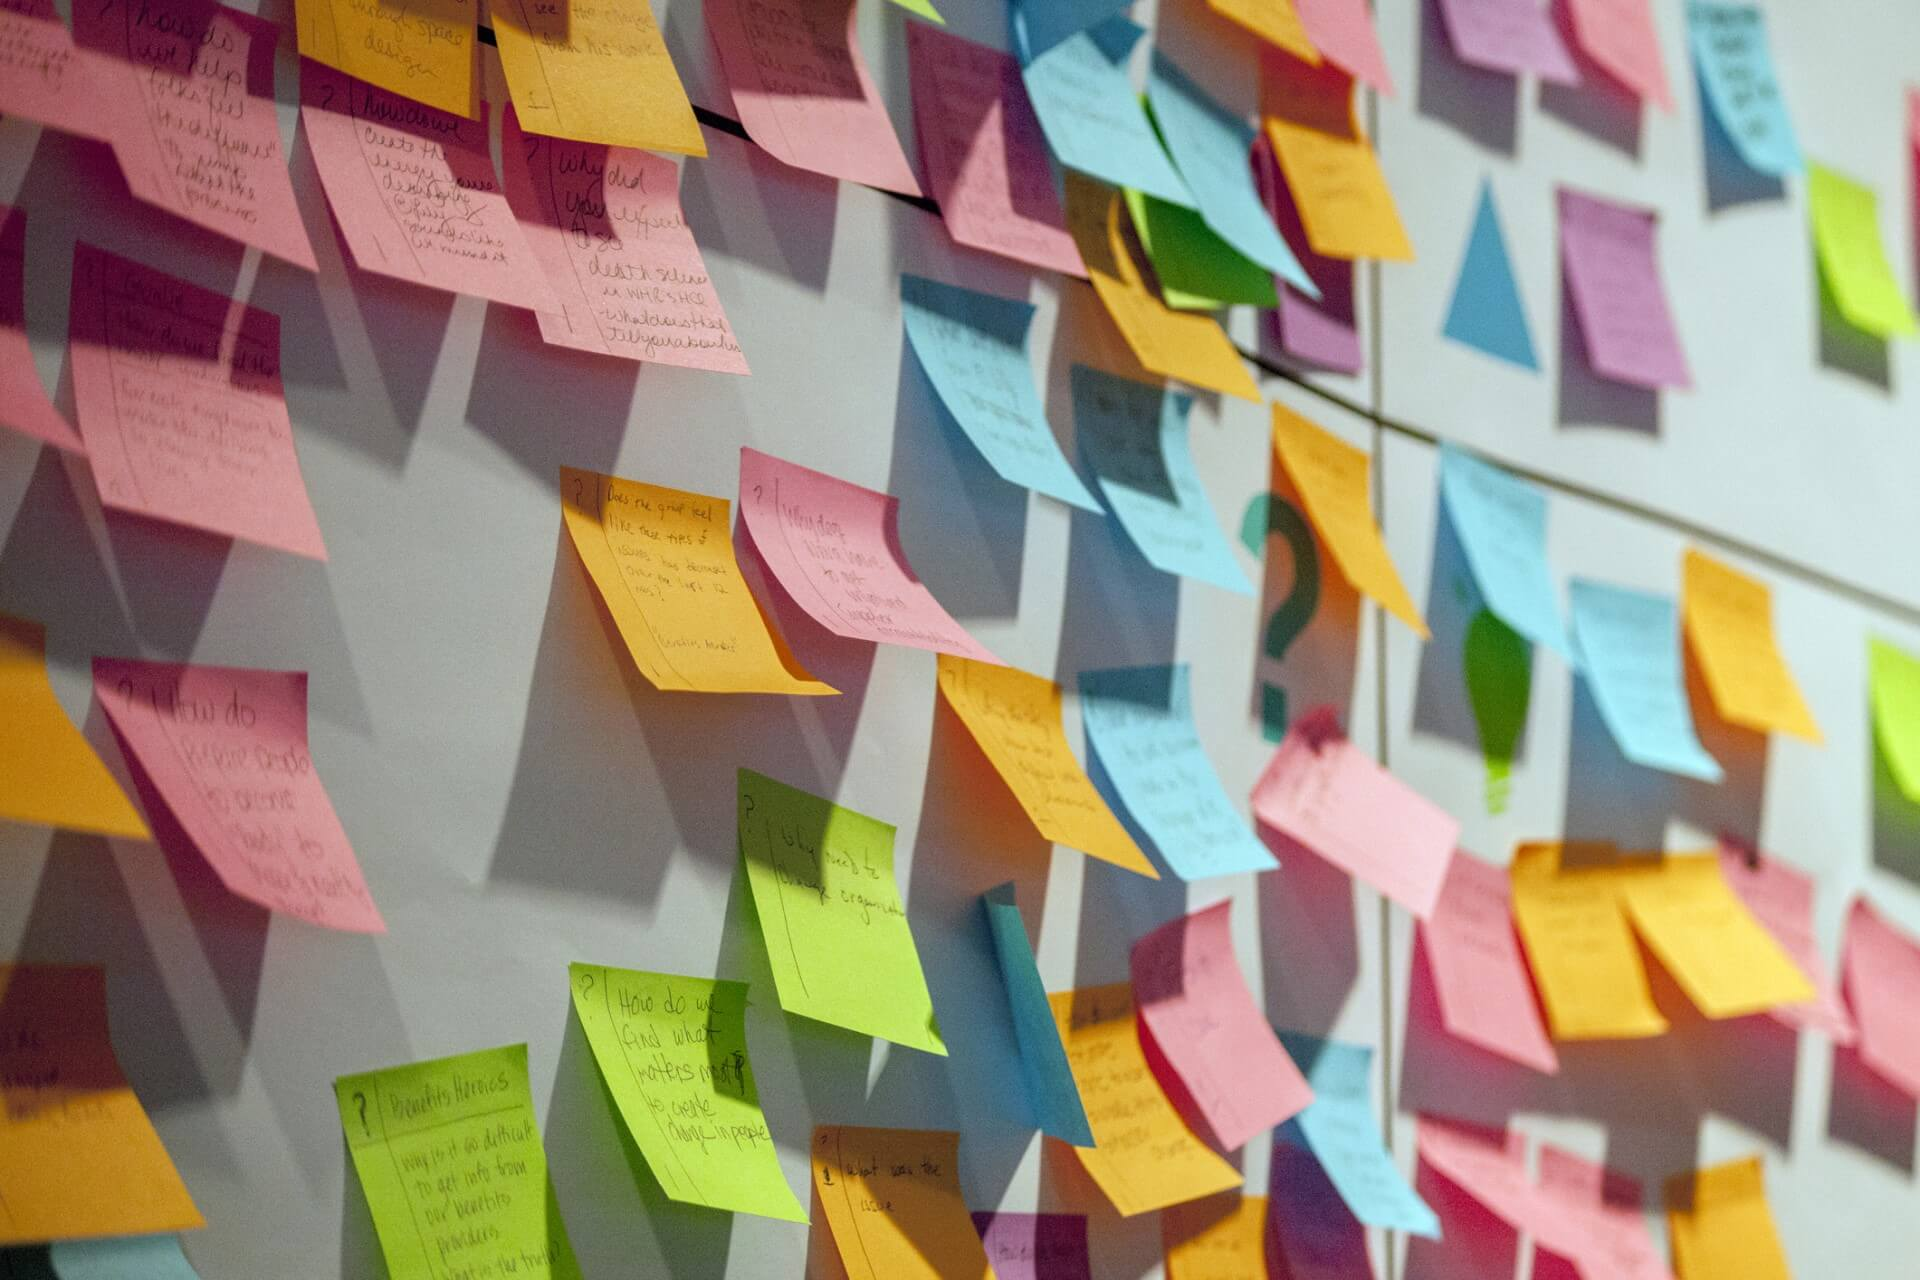 Multi-color sticky notes posted onto a wall.